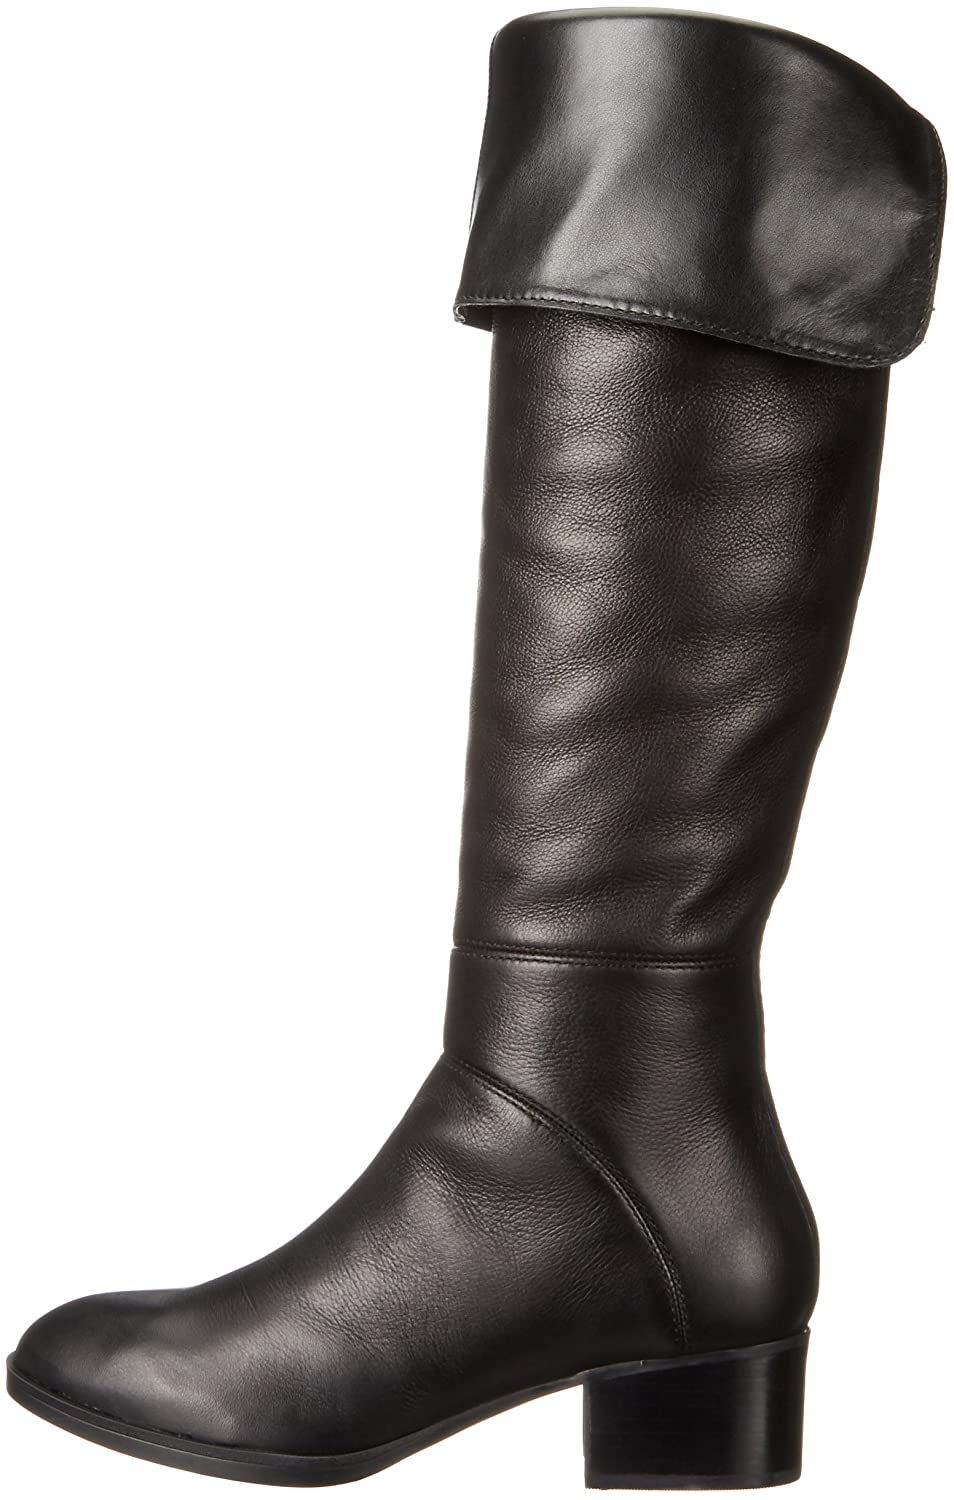 Tommy Hilfiger Women's Gianna Western Boot B01ELFQ3AA 8 B(M) US|Black